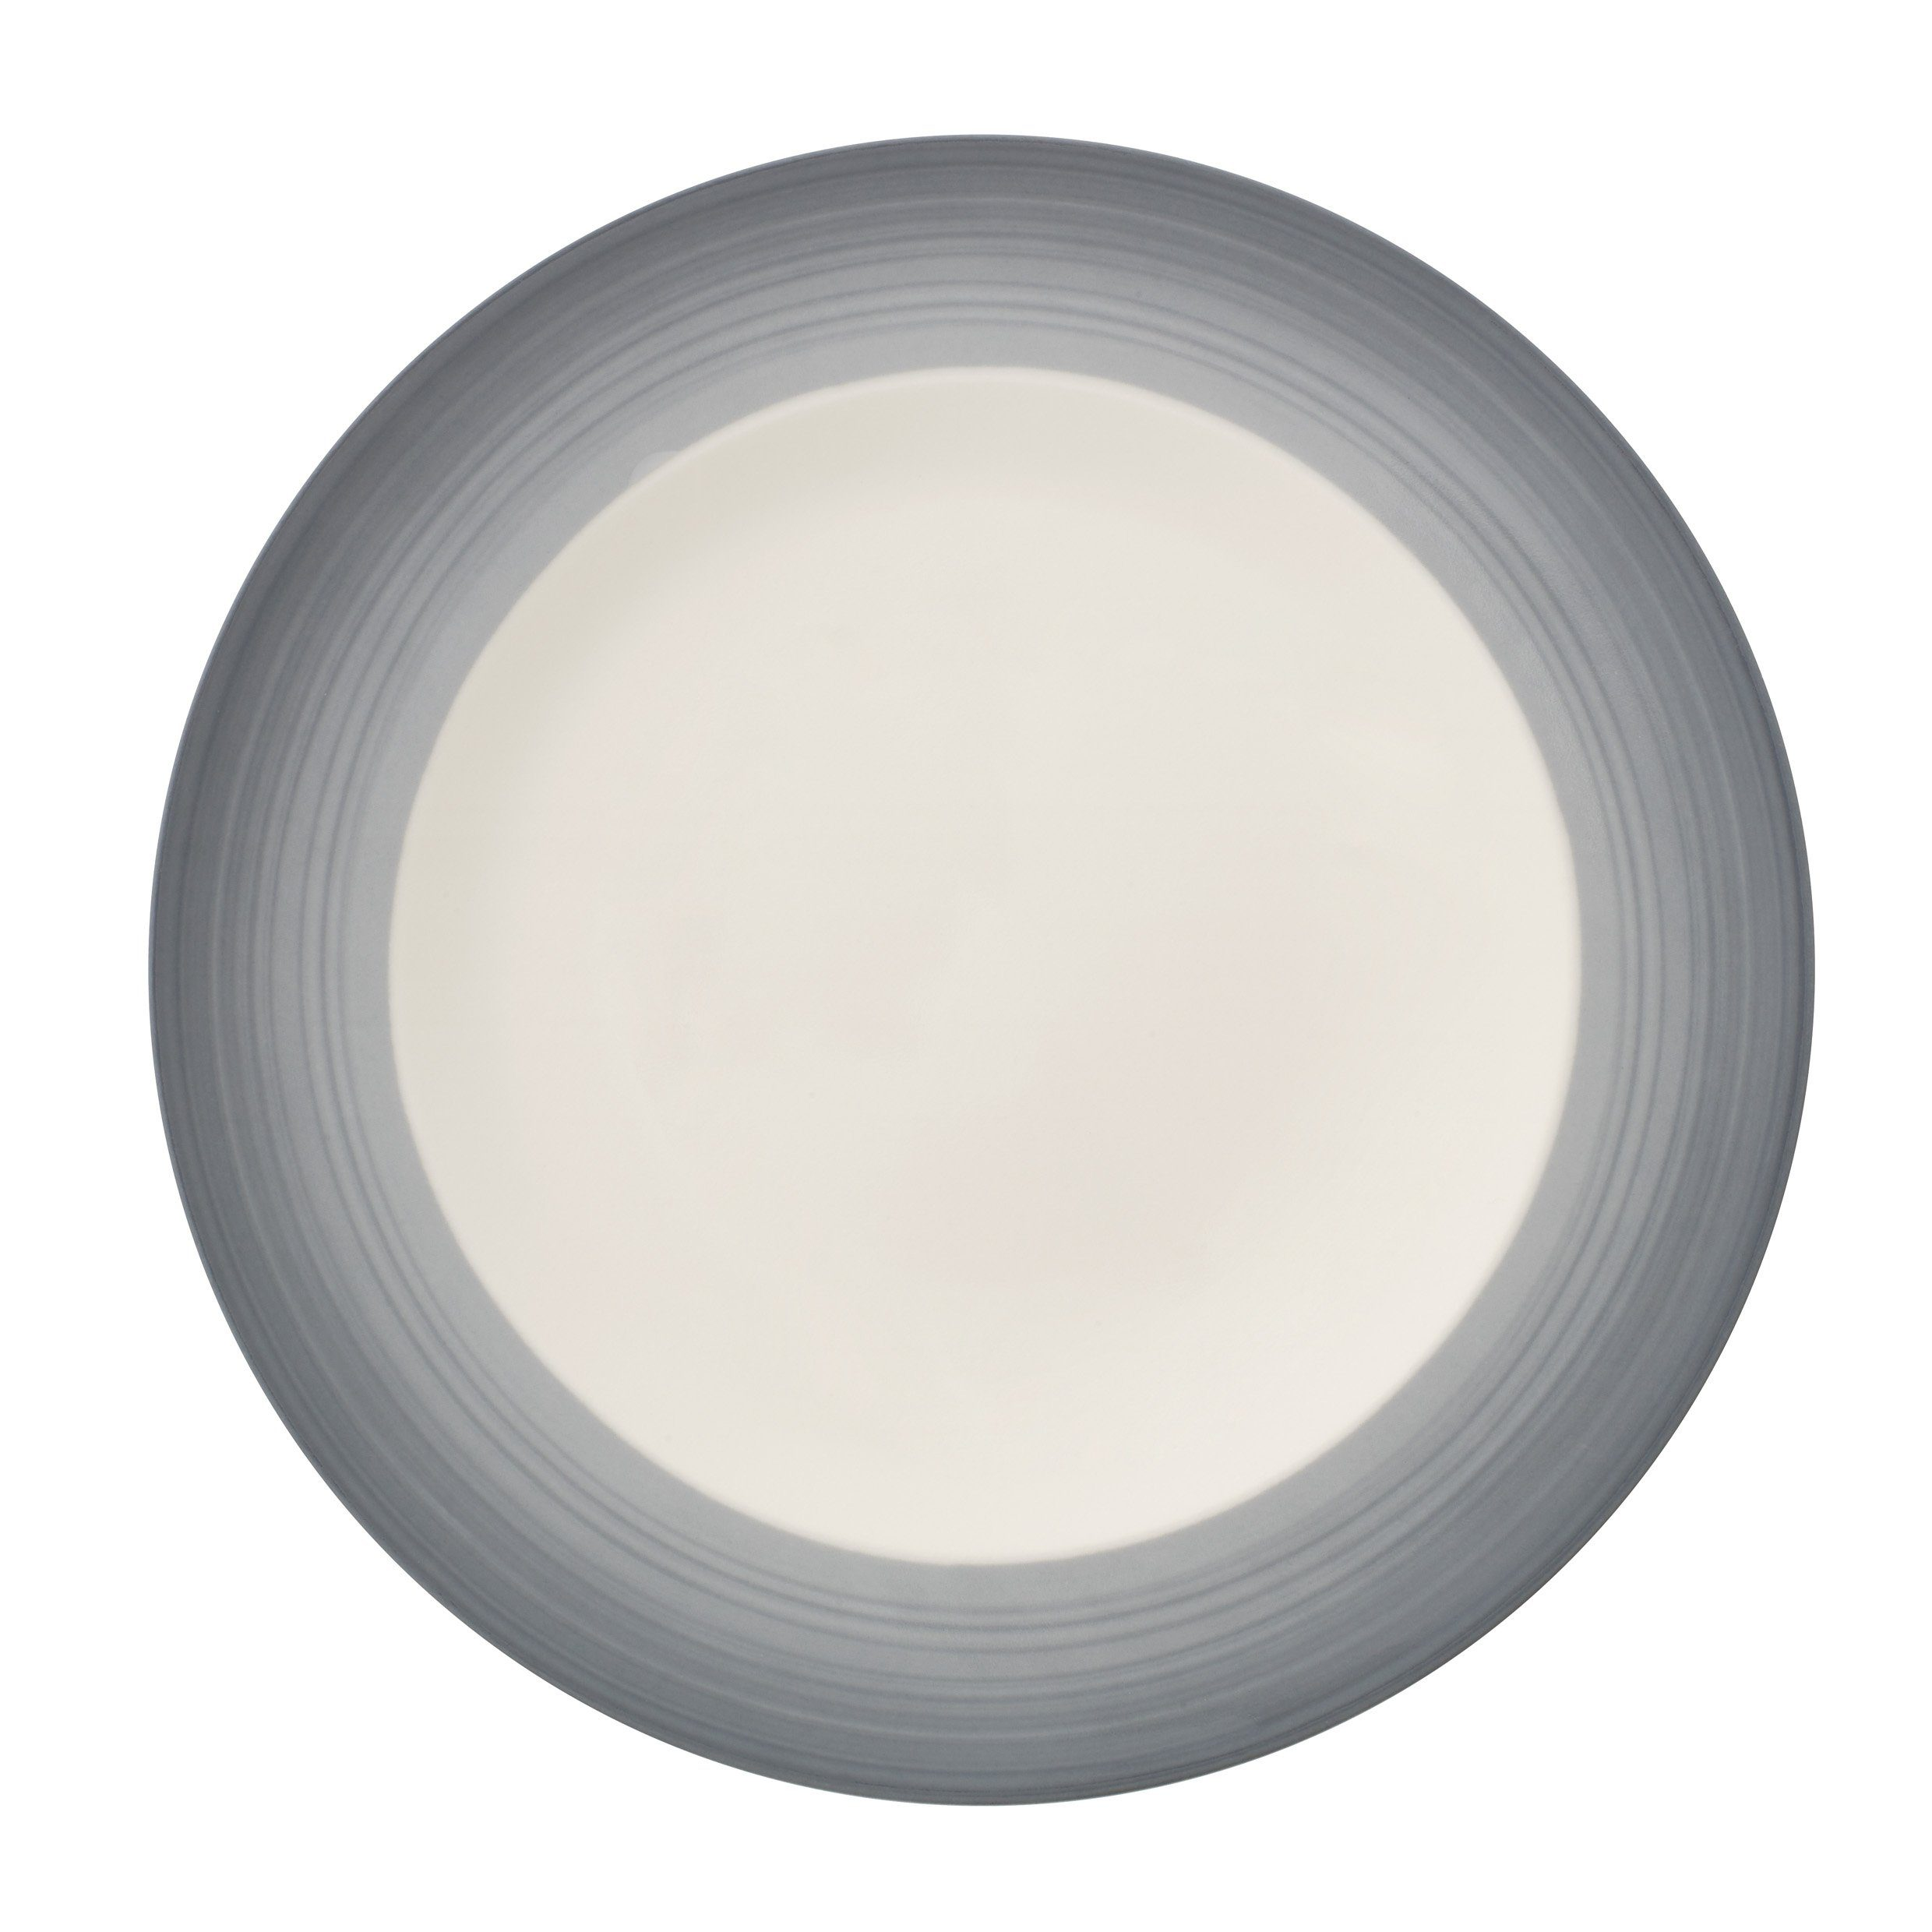 Villeroy & Boch Speiseteller »Colourful Life Cosy Grey«